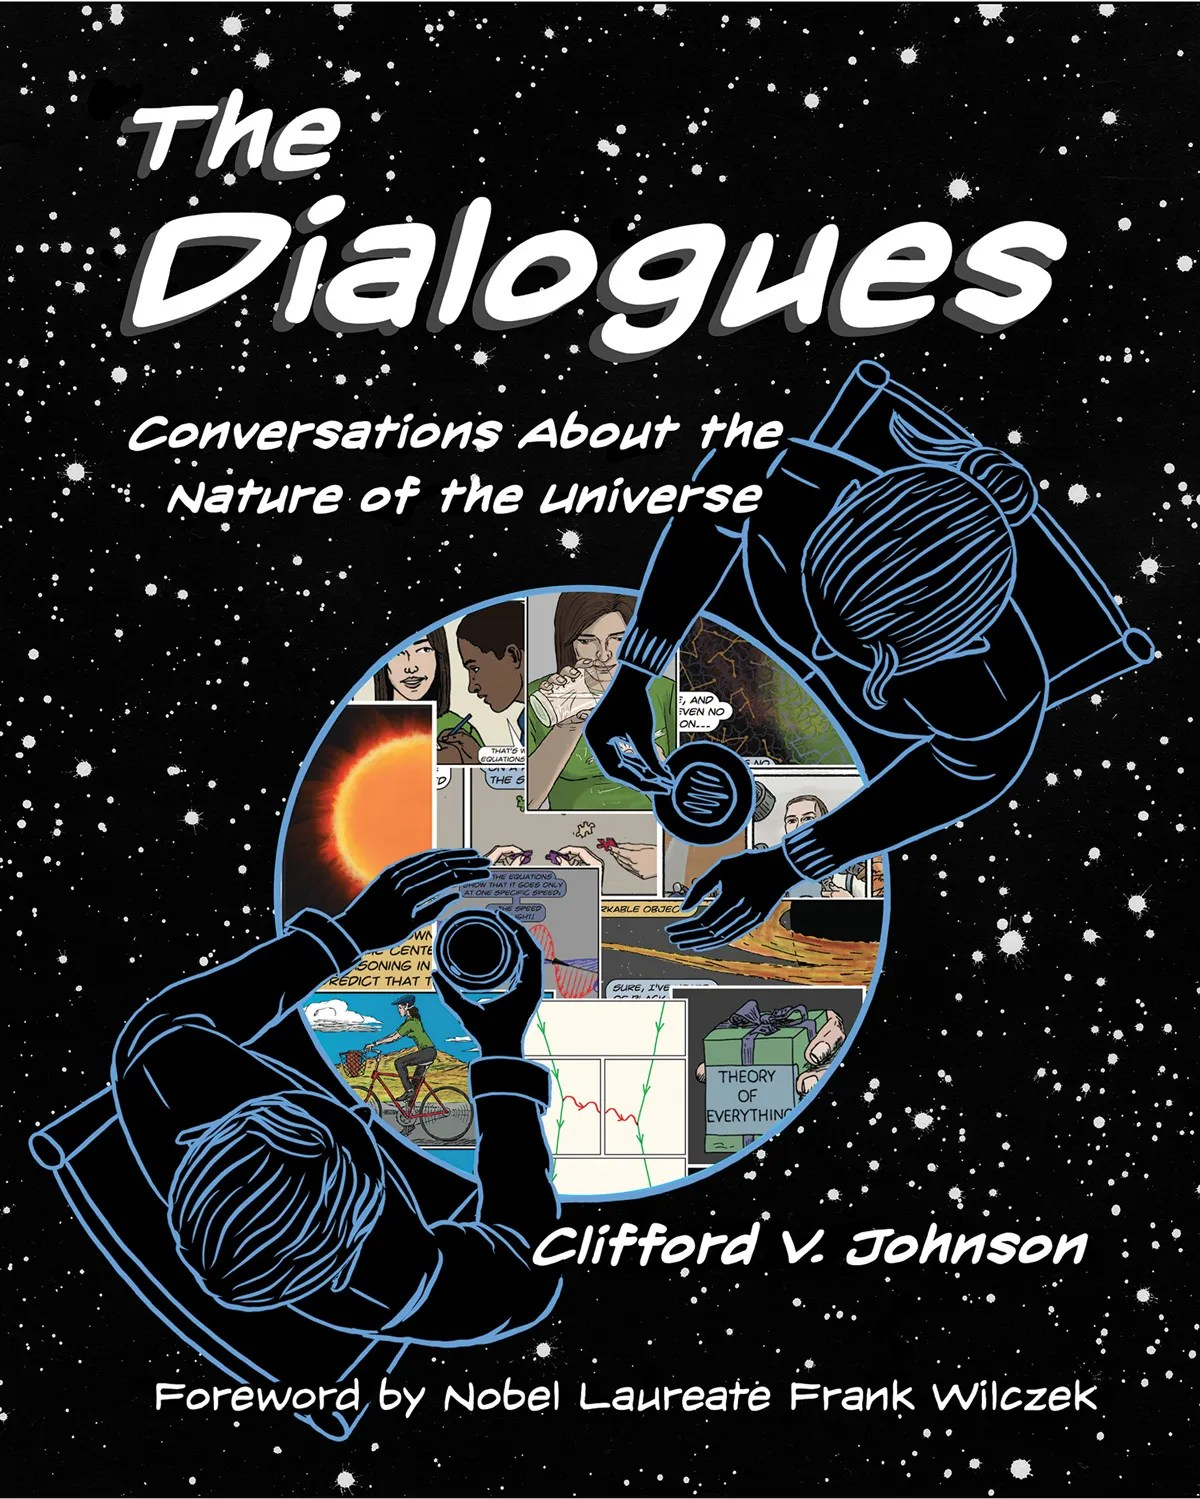 The Dialogues: Illustrated Conversations About the Most Thrilling Frontiers of Science by Theoretical Physicist and Self-Taught Artist Clifford Johnson